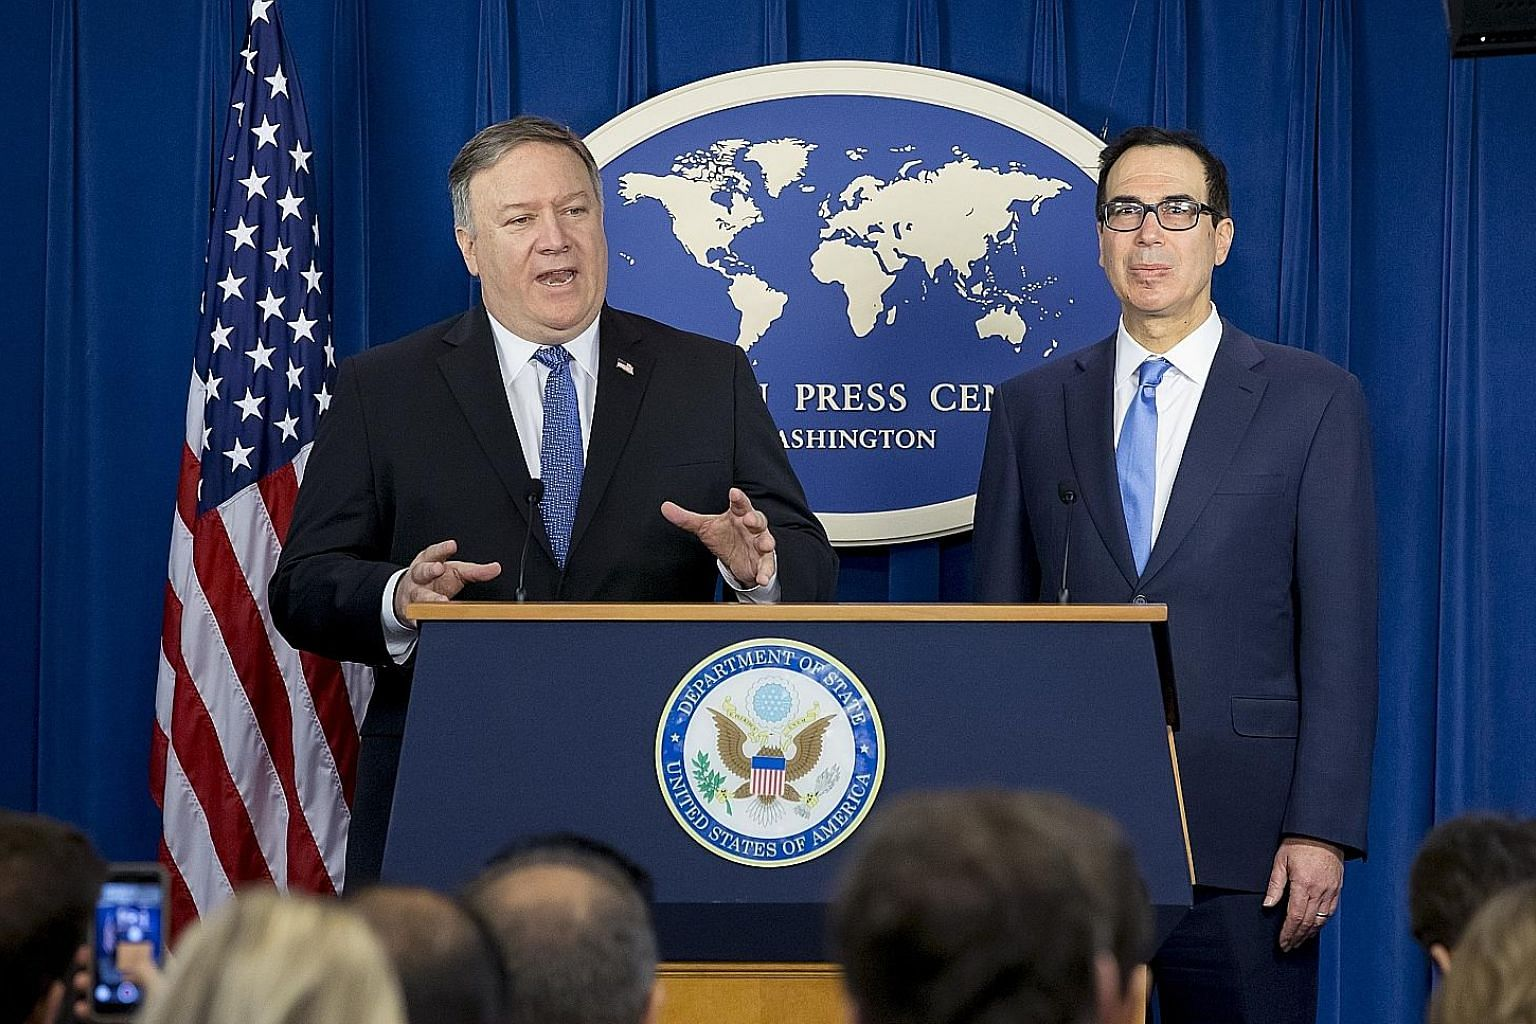 US Secretary of State Mike Pompeo (left) and Treasury Secretary Steven Mnuchin at Monday's media briefing on the wide sanctions against Iran. Analysts say this round of penalties is not an existential threat to Teheran.